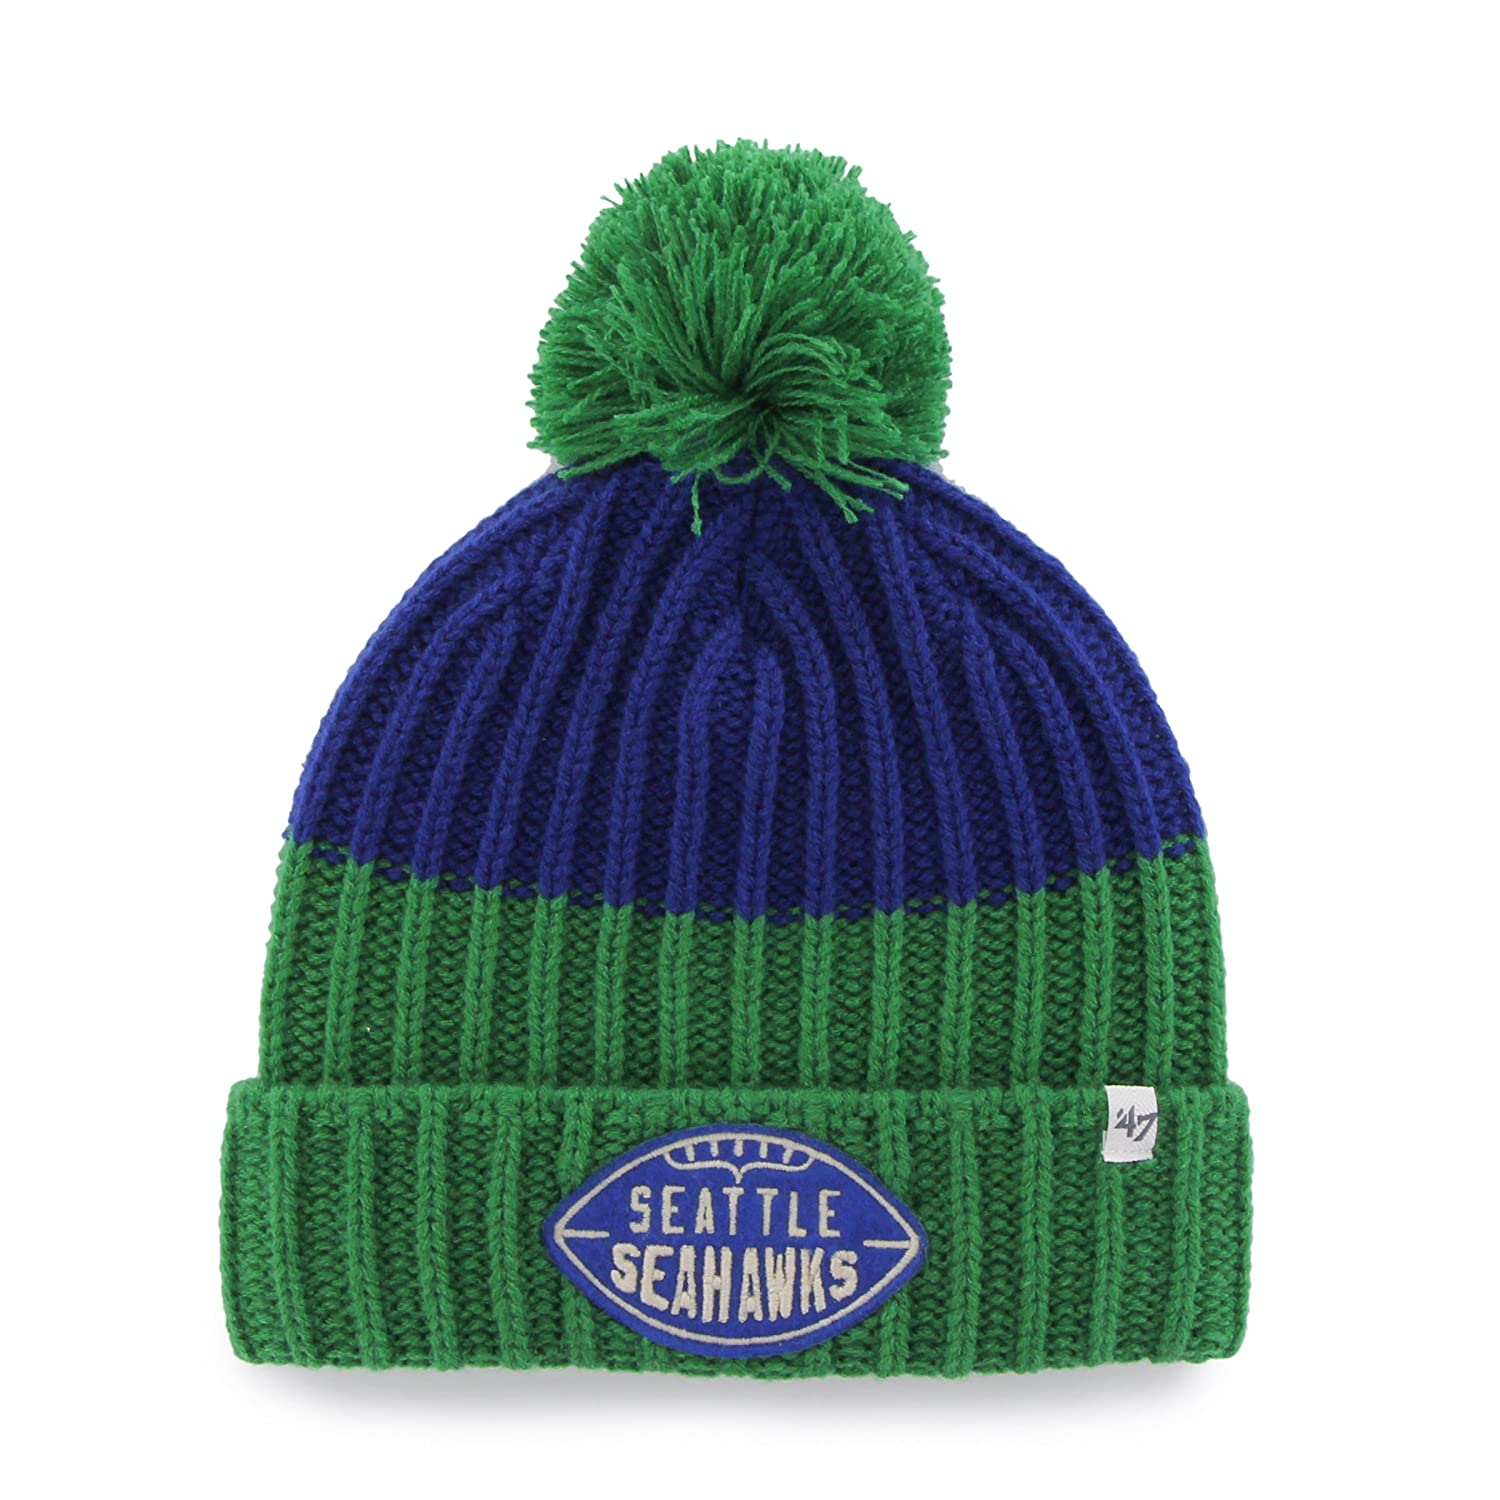 5d8b4d91353 Amazon.com   NFL Seattle Seahawks Cable Knit Vintage Gridiron Founder Knit  Hat by  47   Sports   Outdoors